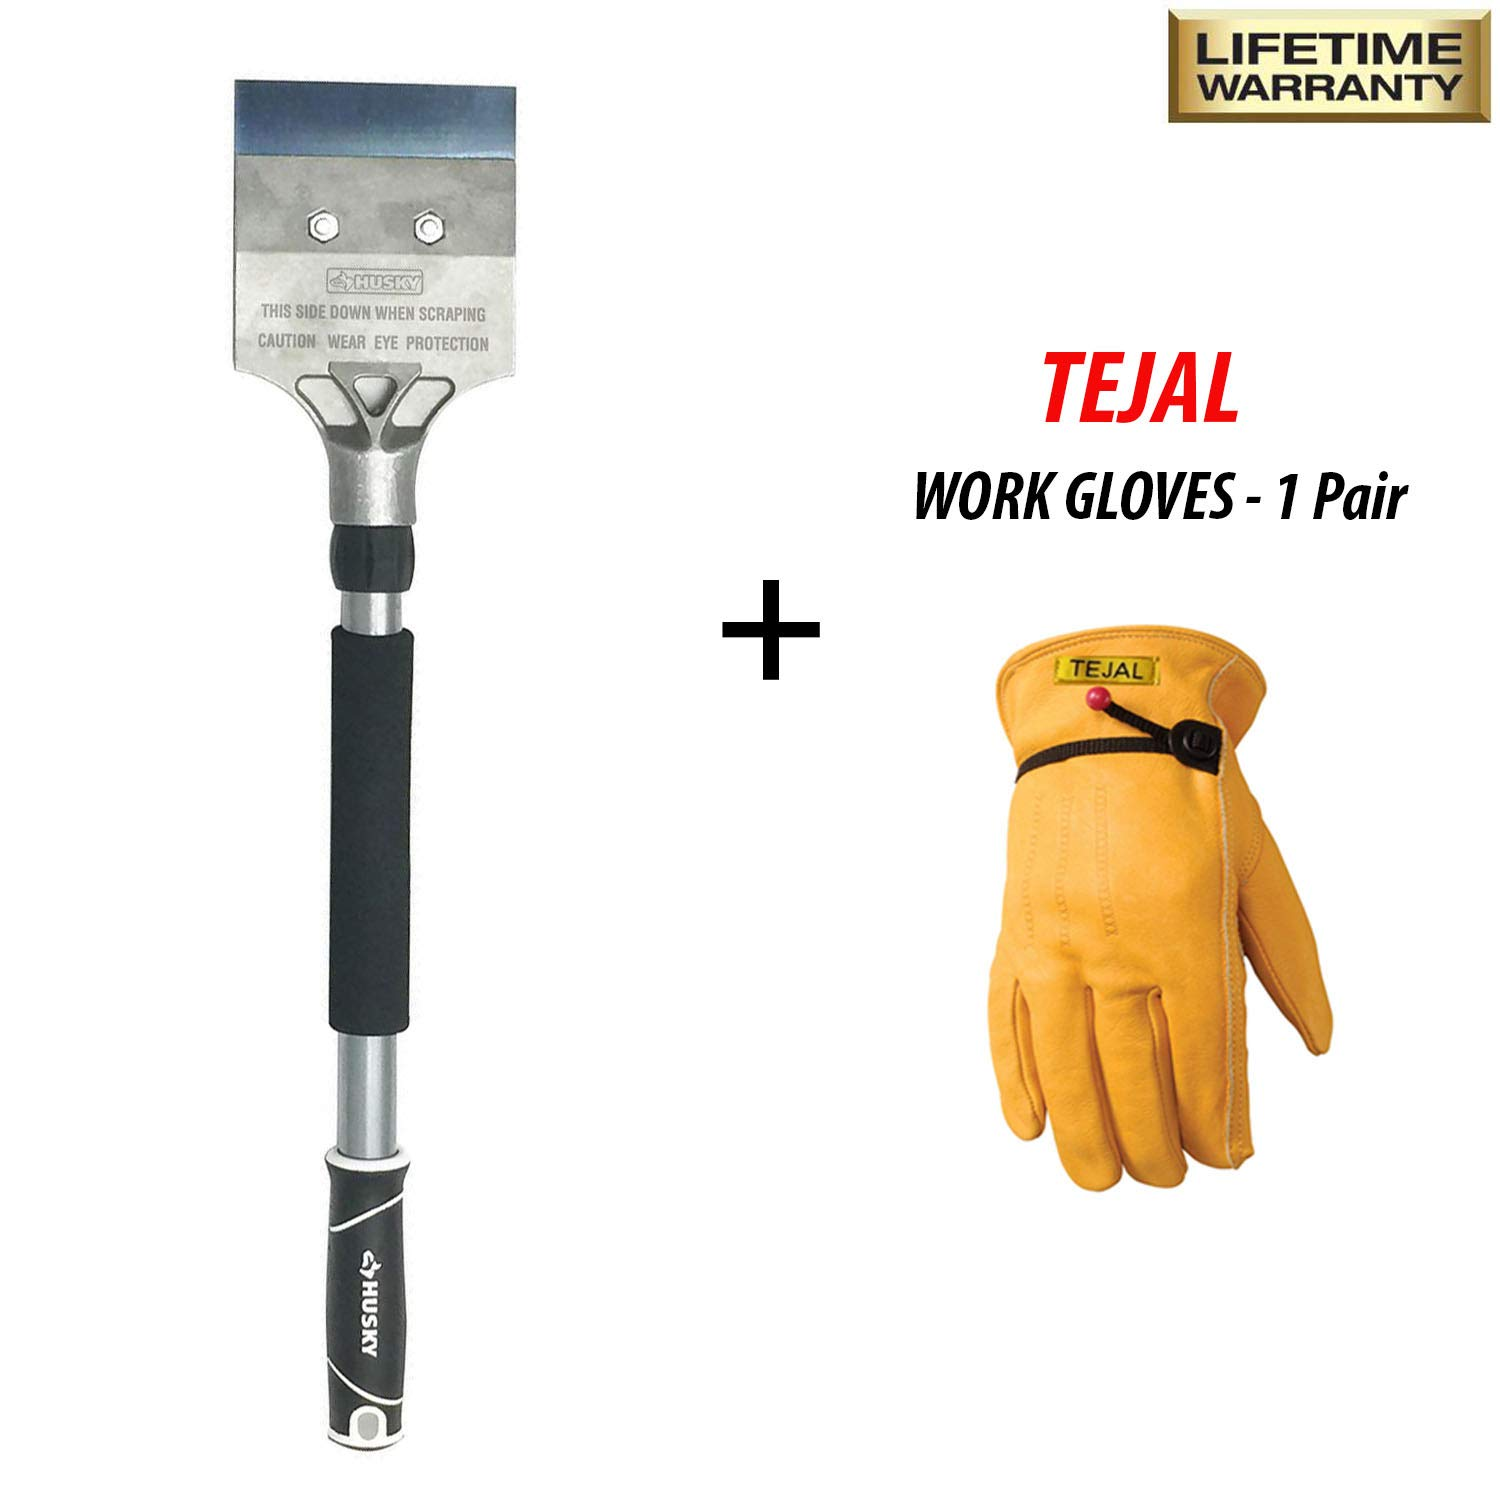 Husky 4 x 4 inches Floor Scraper with 18 Inches Handle - Heavy Duty 4 Inch Floor Scraper, Steel Blade, Soft Grip & Extra Form Grip - for Wall, Floor, Roof with TEJAL Cowhide Leather Work Gloves Large by Husky